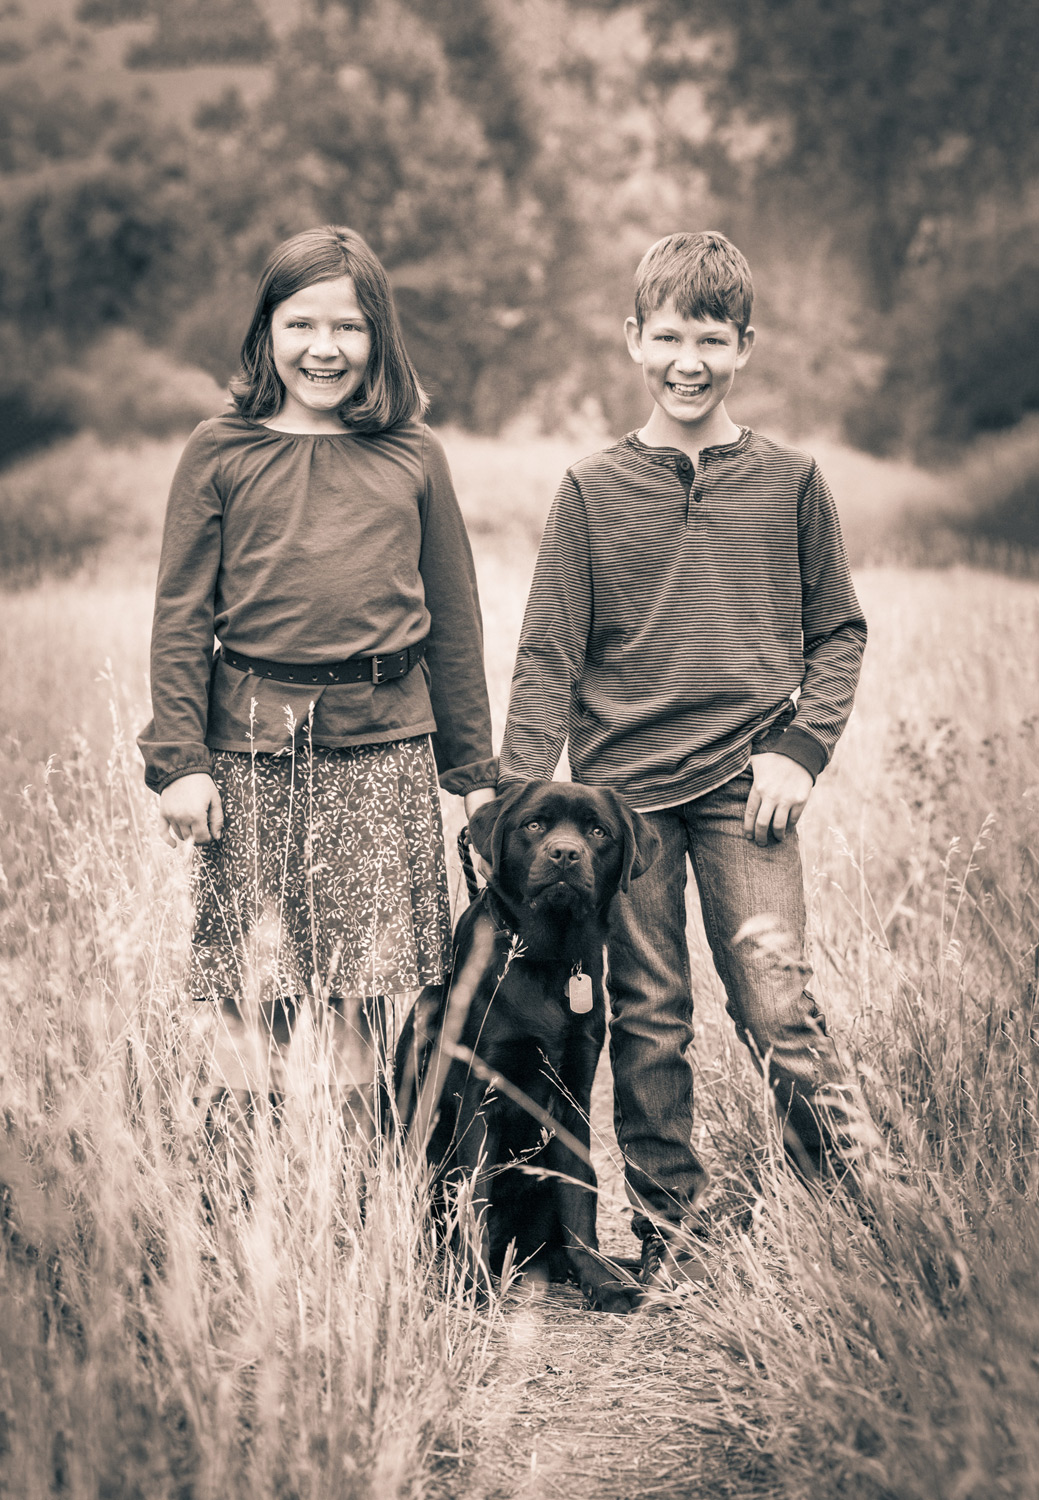 kids-laughing-with-dog.jpg